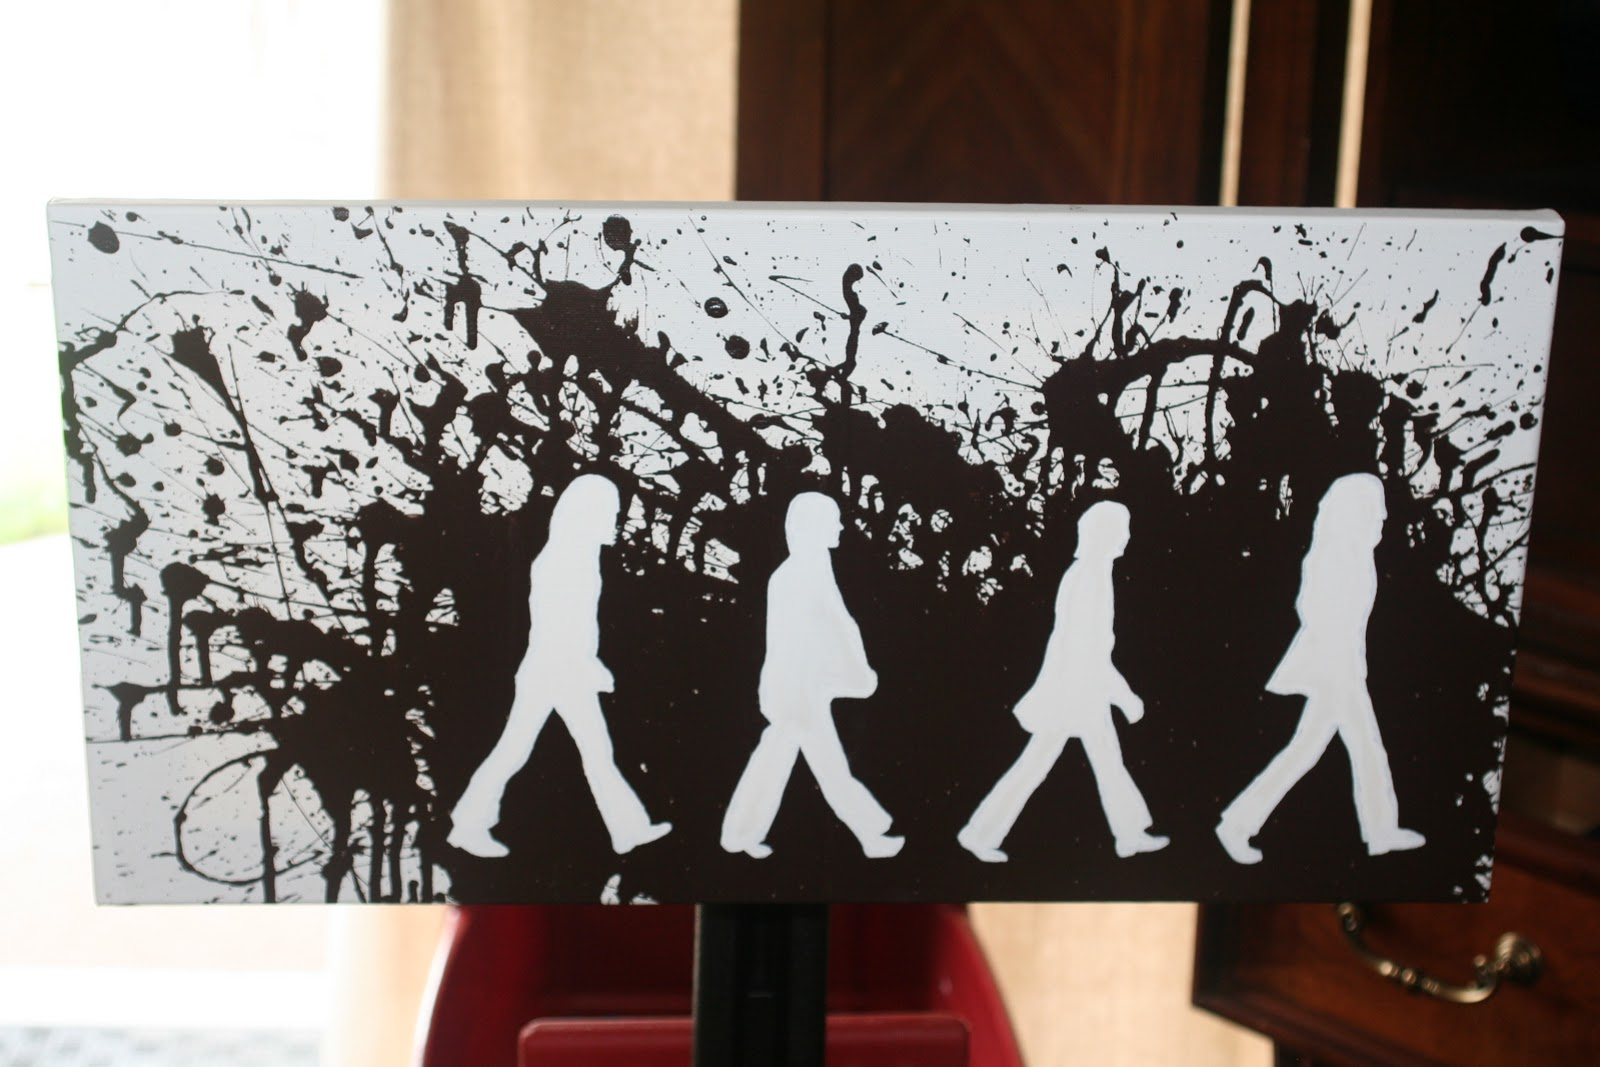 diy gifts for men, diy gifts, diy abbey road art